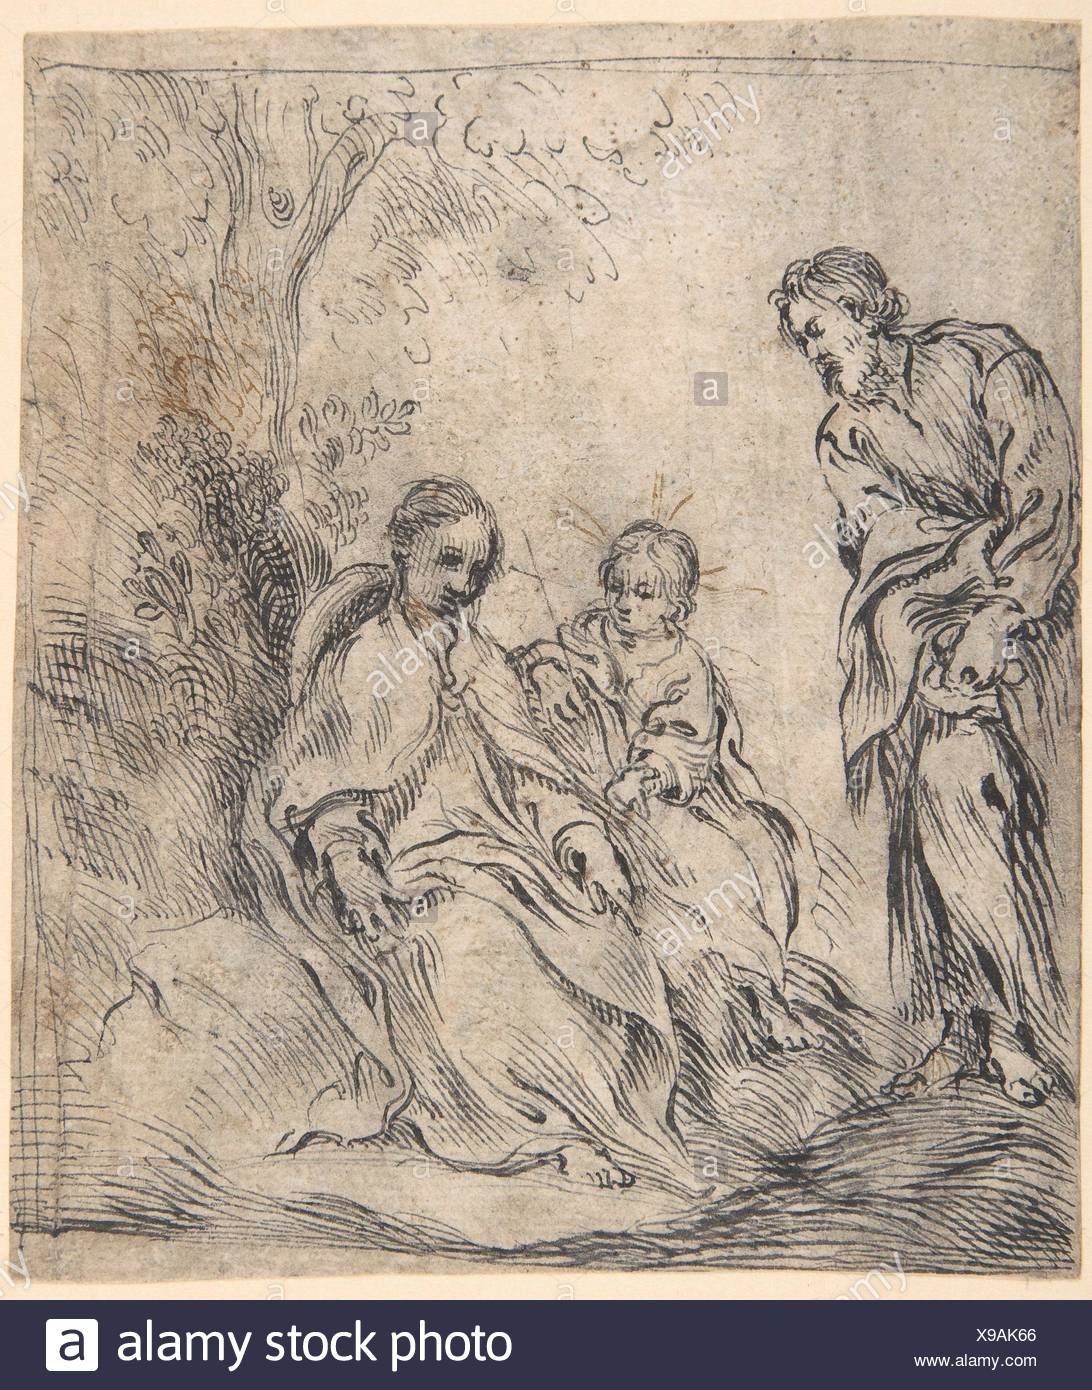 The Youthful Baptist with his Parents. Artist: attributed to Antonio del Castillo y Saavedra (Spanish, Cordoba 1616-1668 Cordoba); Date: 1616-68; - Stock Image